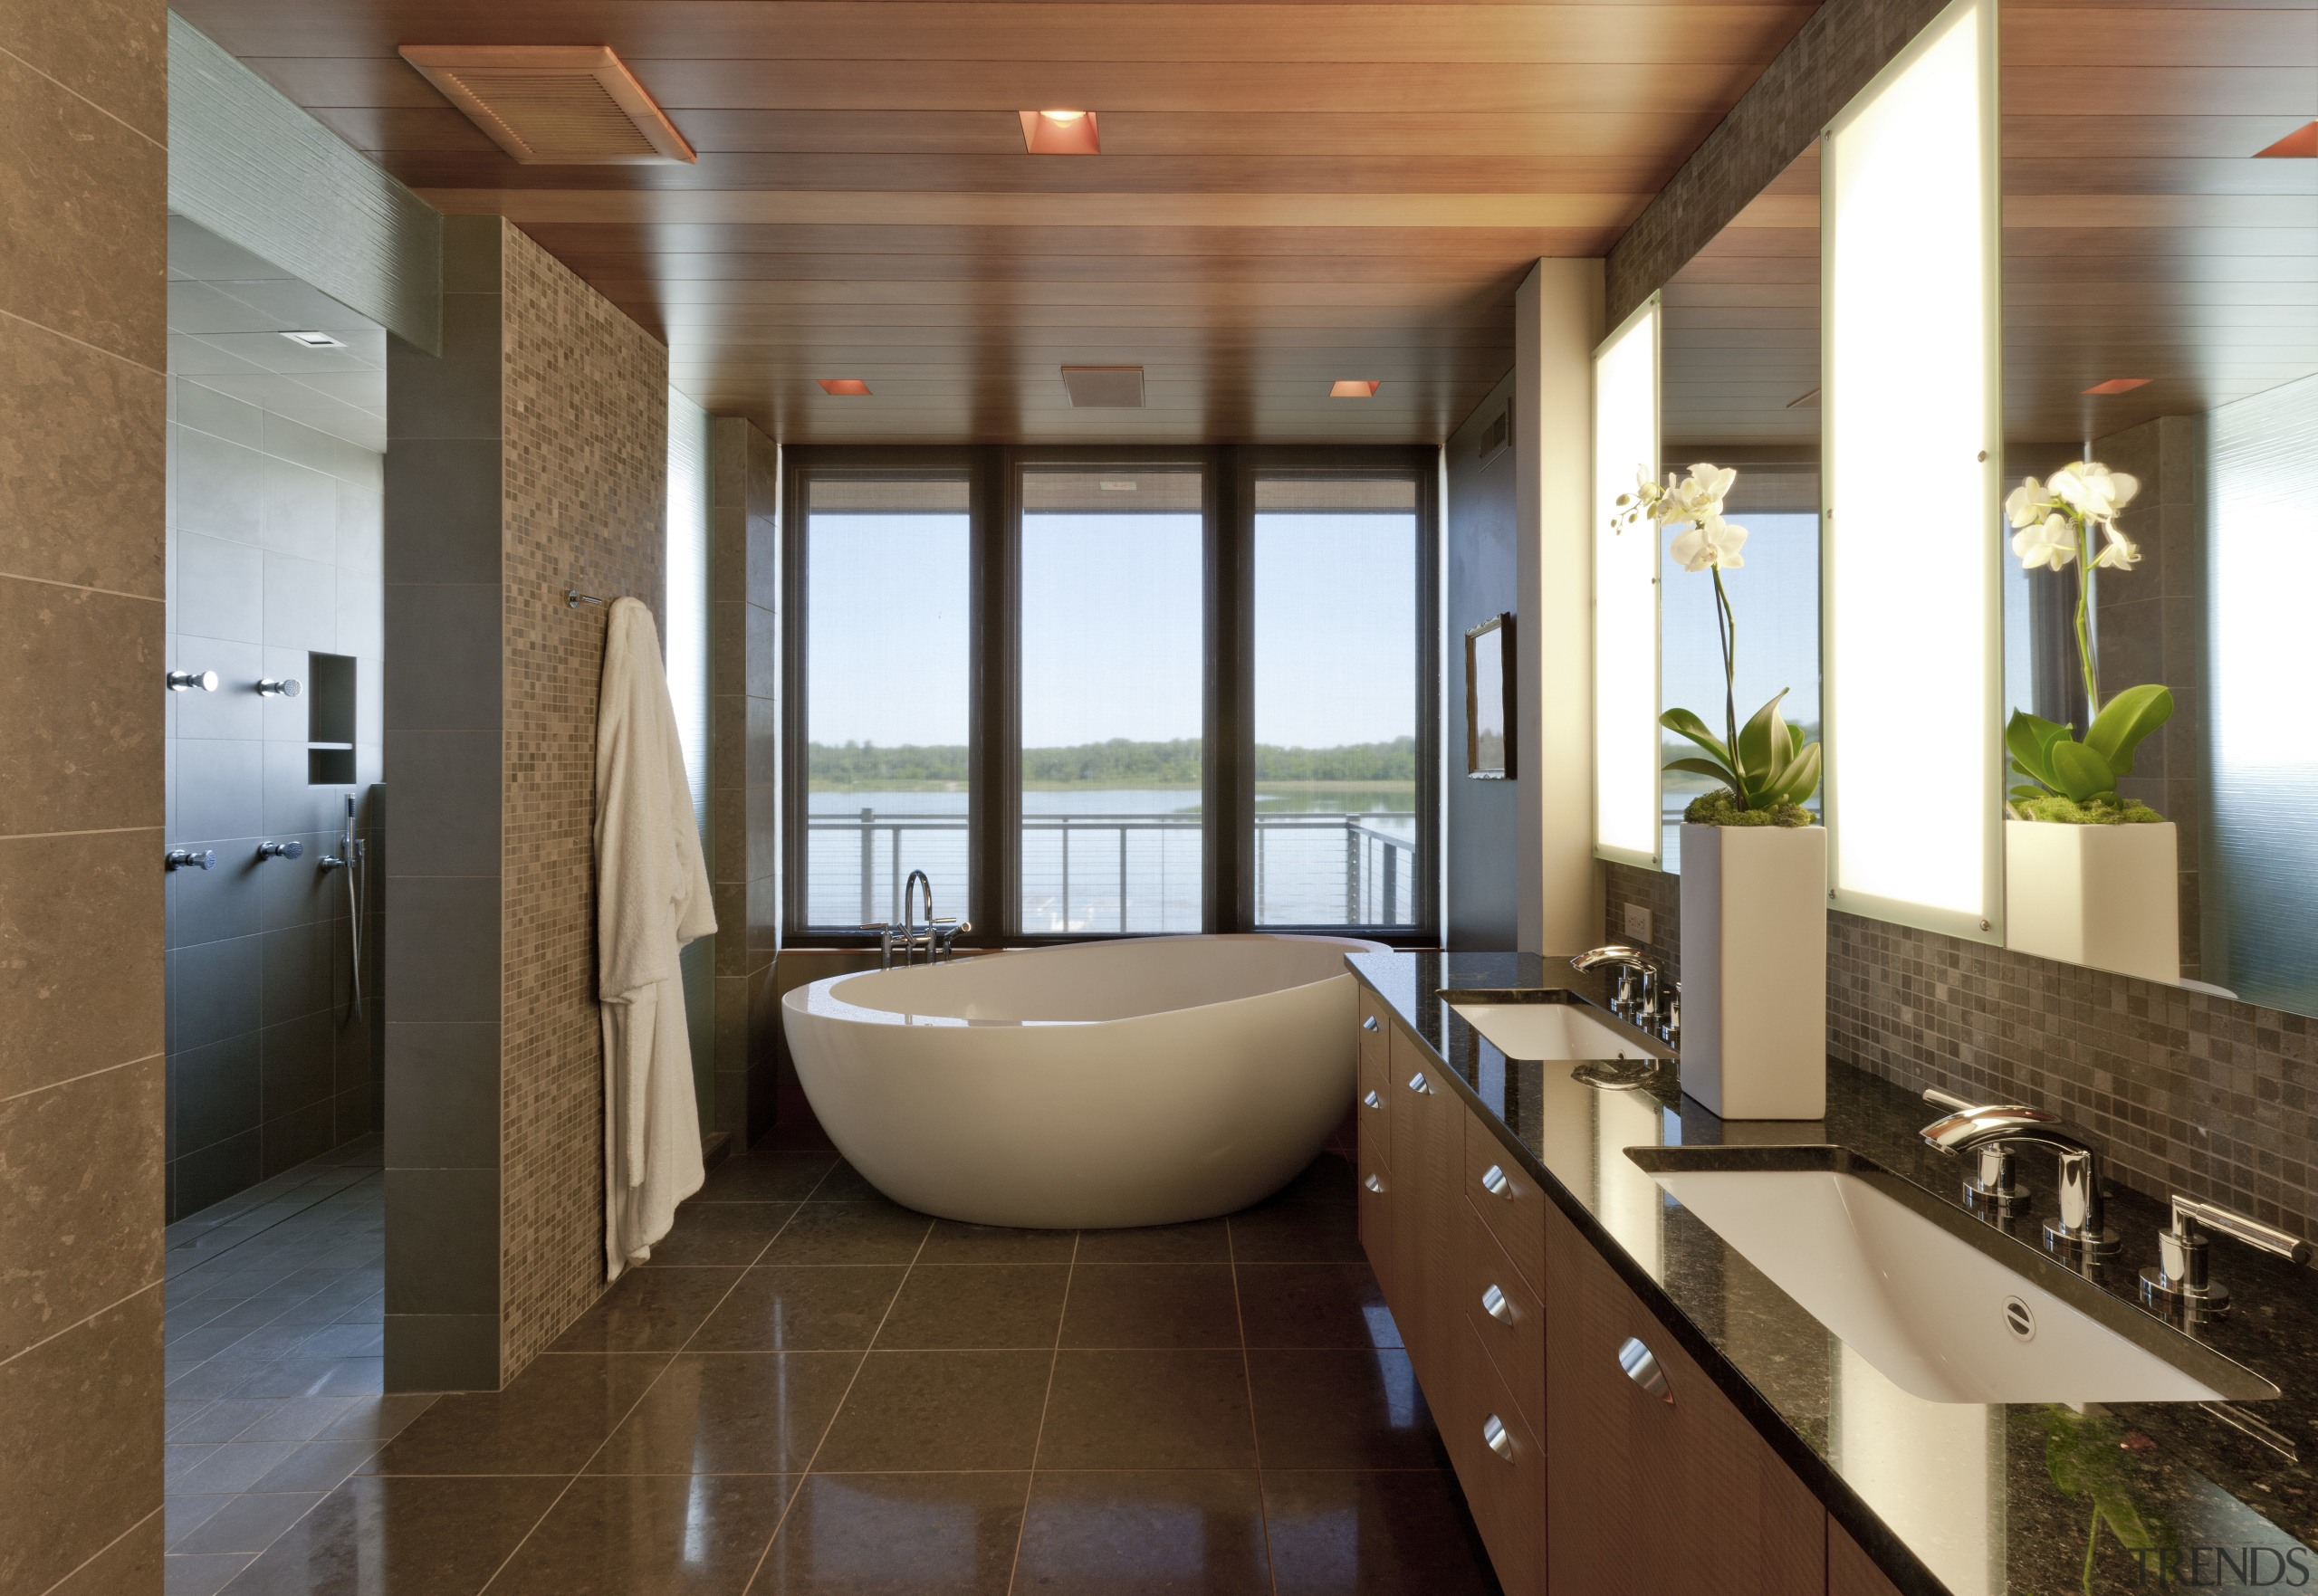 big white bathtub at far end of galley-style architecture, bathroom, ceiling, estate, floor, interior design, lobby, real estate, room, brown